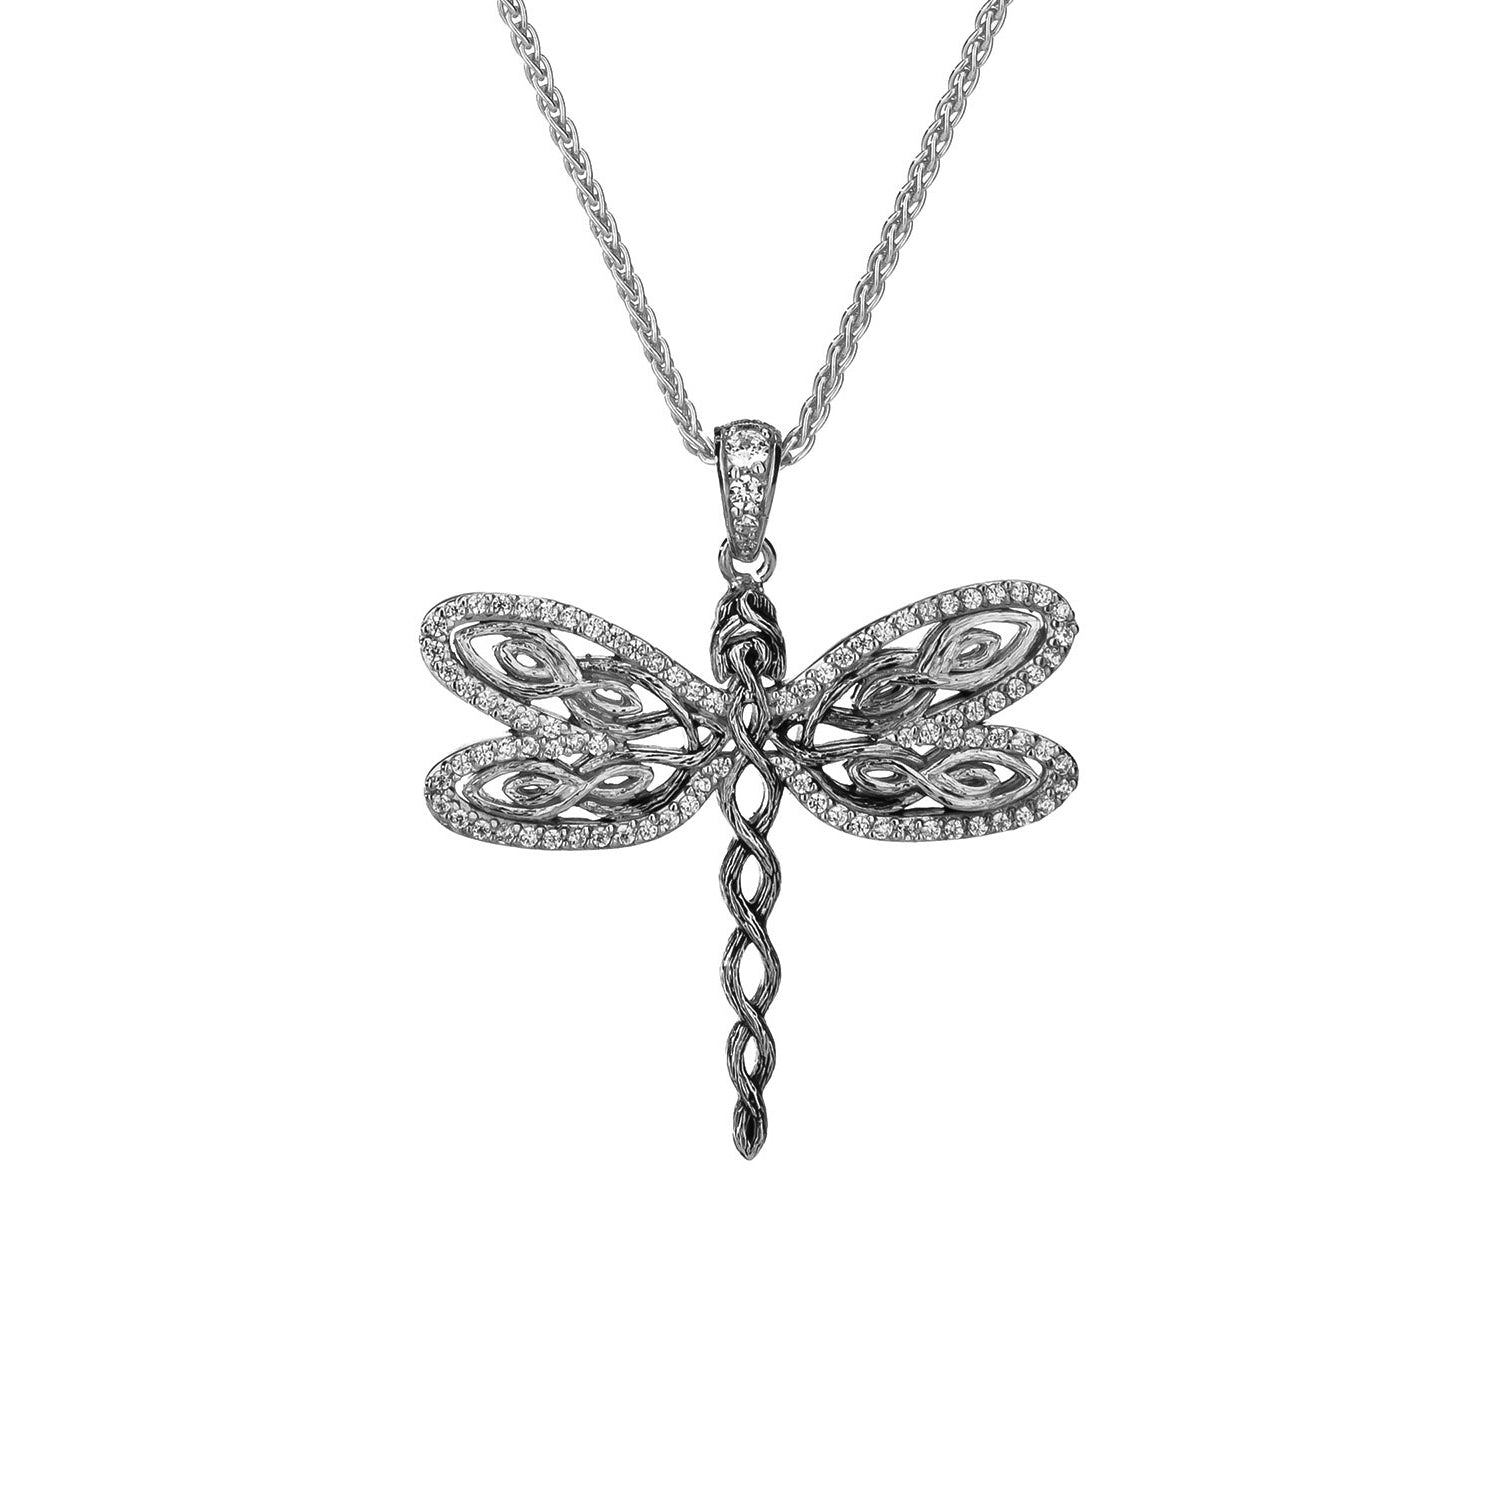 Pendant Rhodium White CZ Barked Dragonfly Pendant from welch and company jewelers near syracuse ny